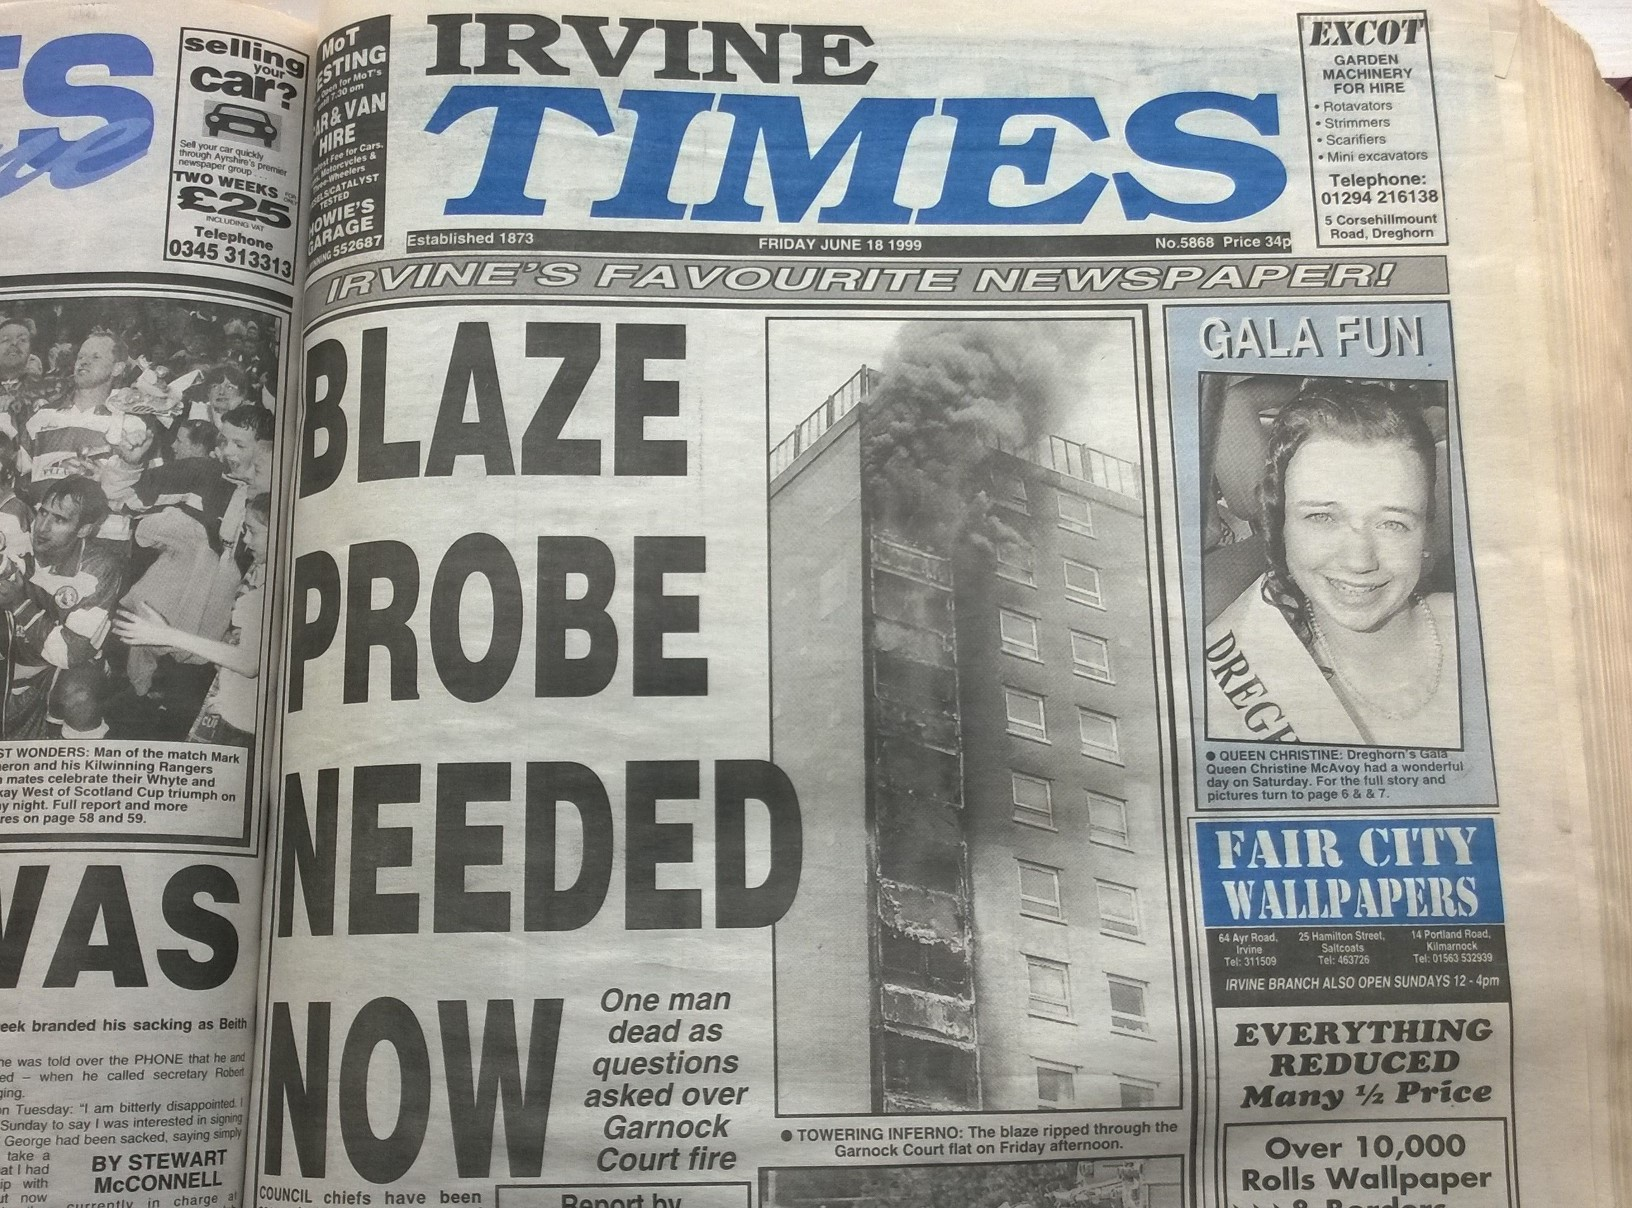 Irvine high flat fire to feature in BBC documentary